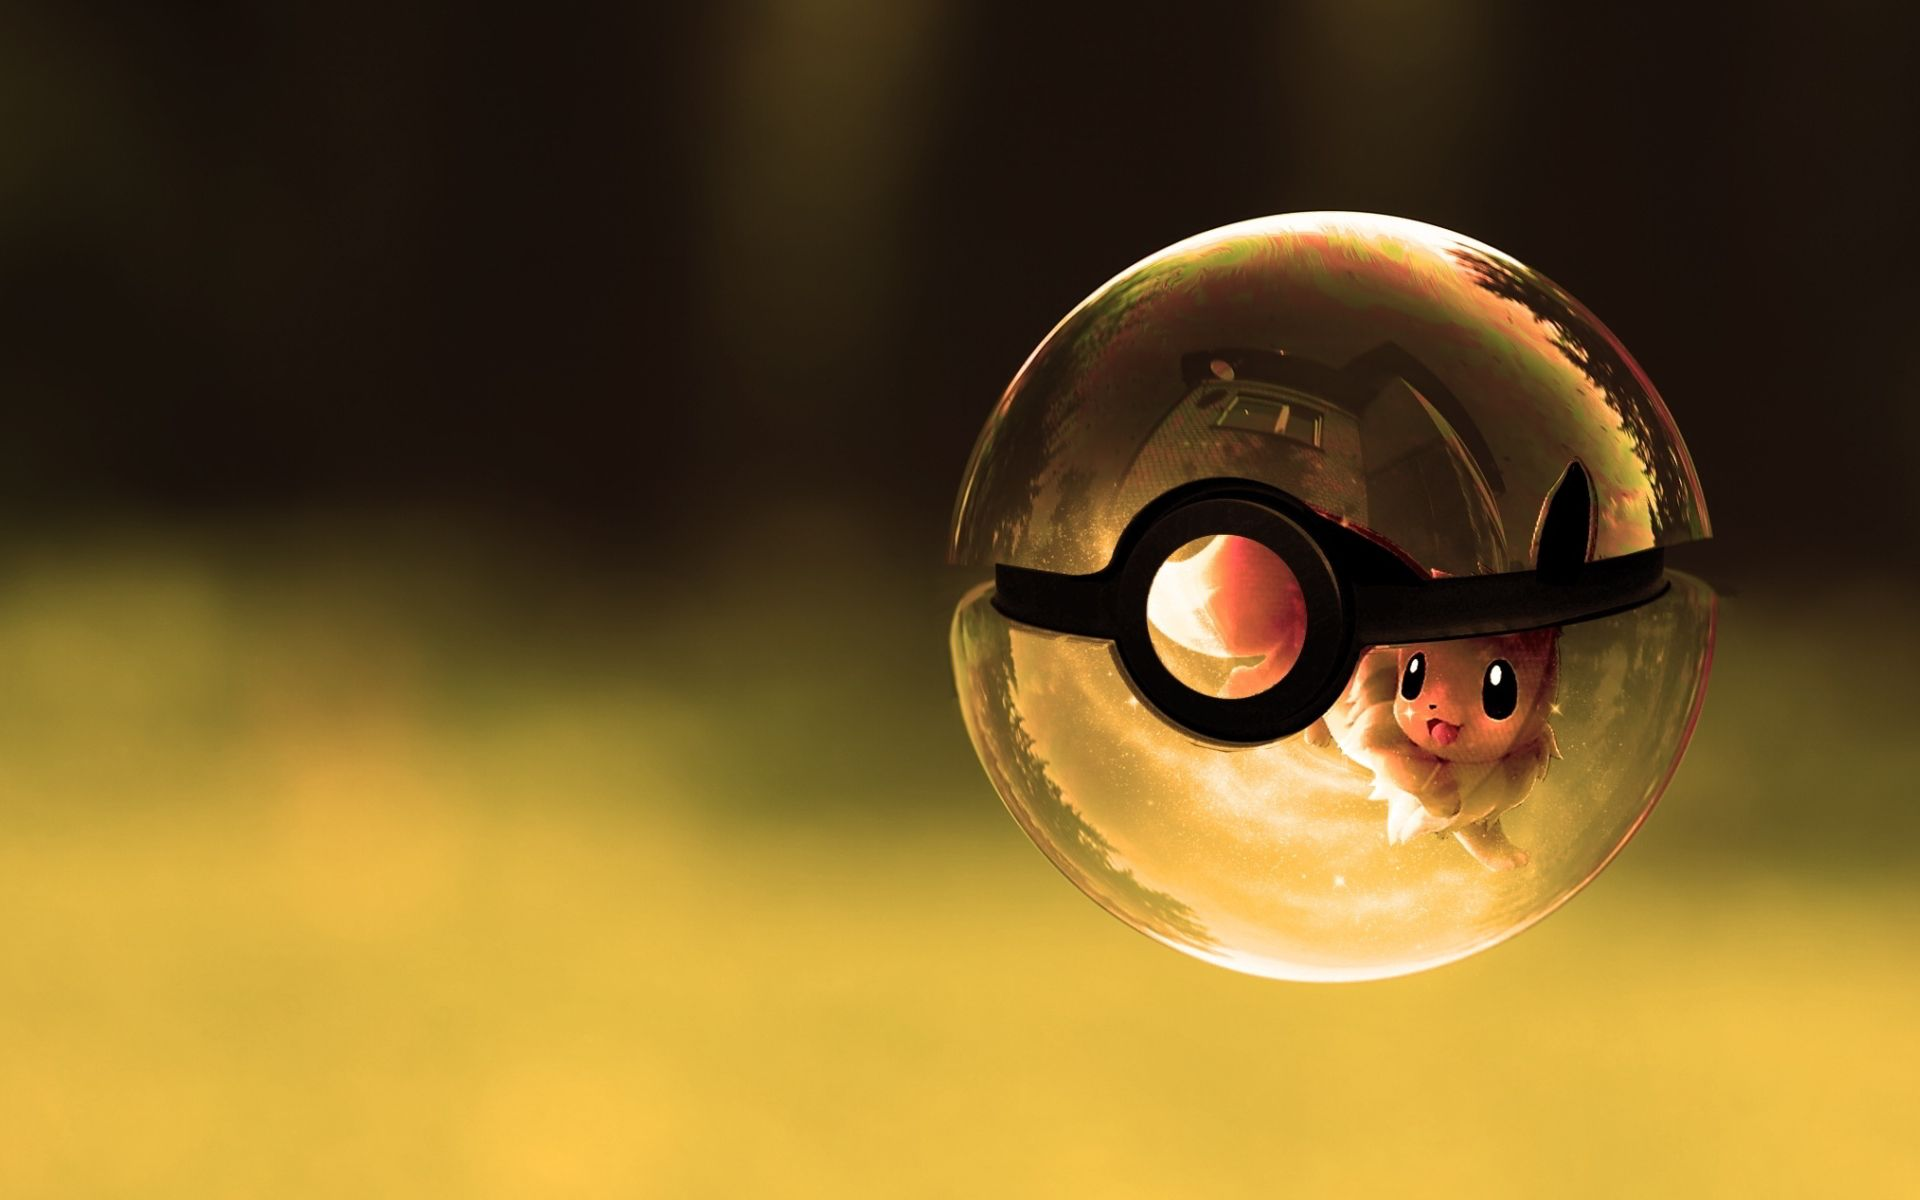 Pikachu Images 3d Wallpapers